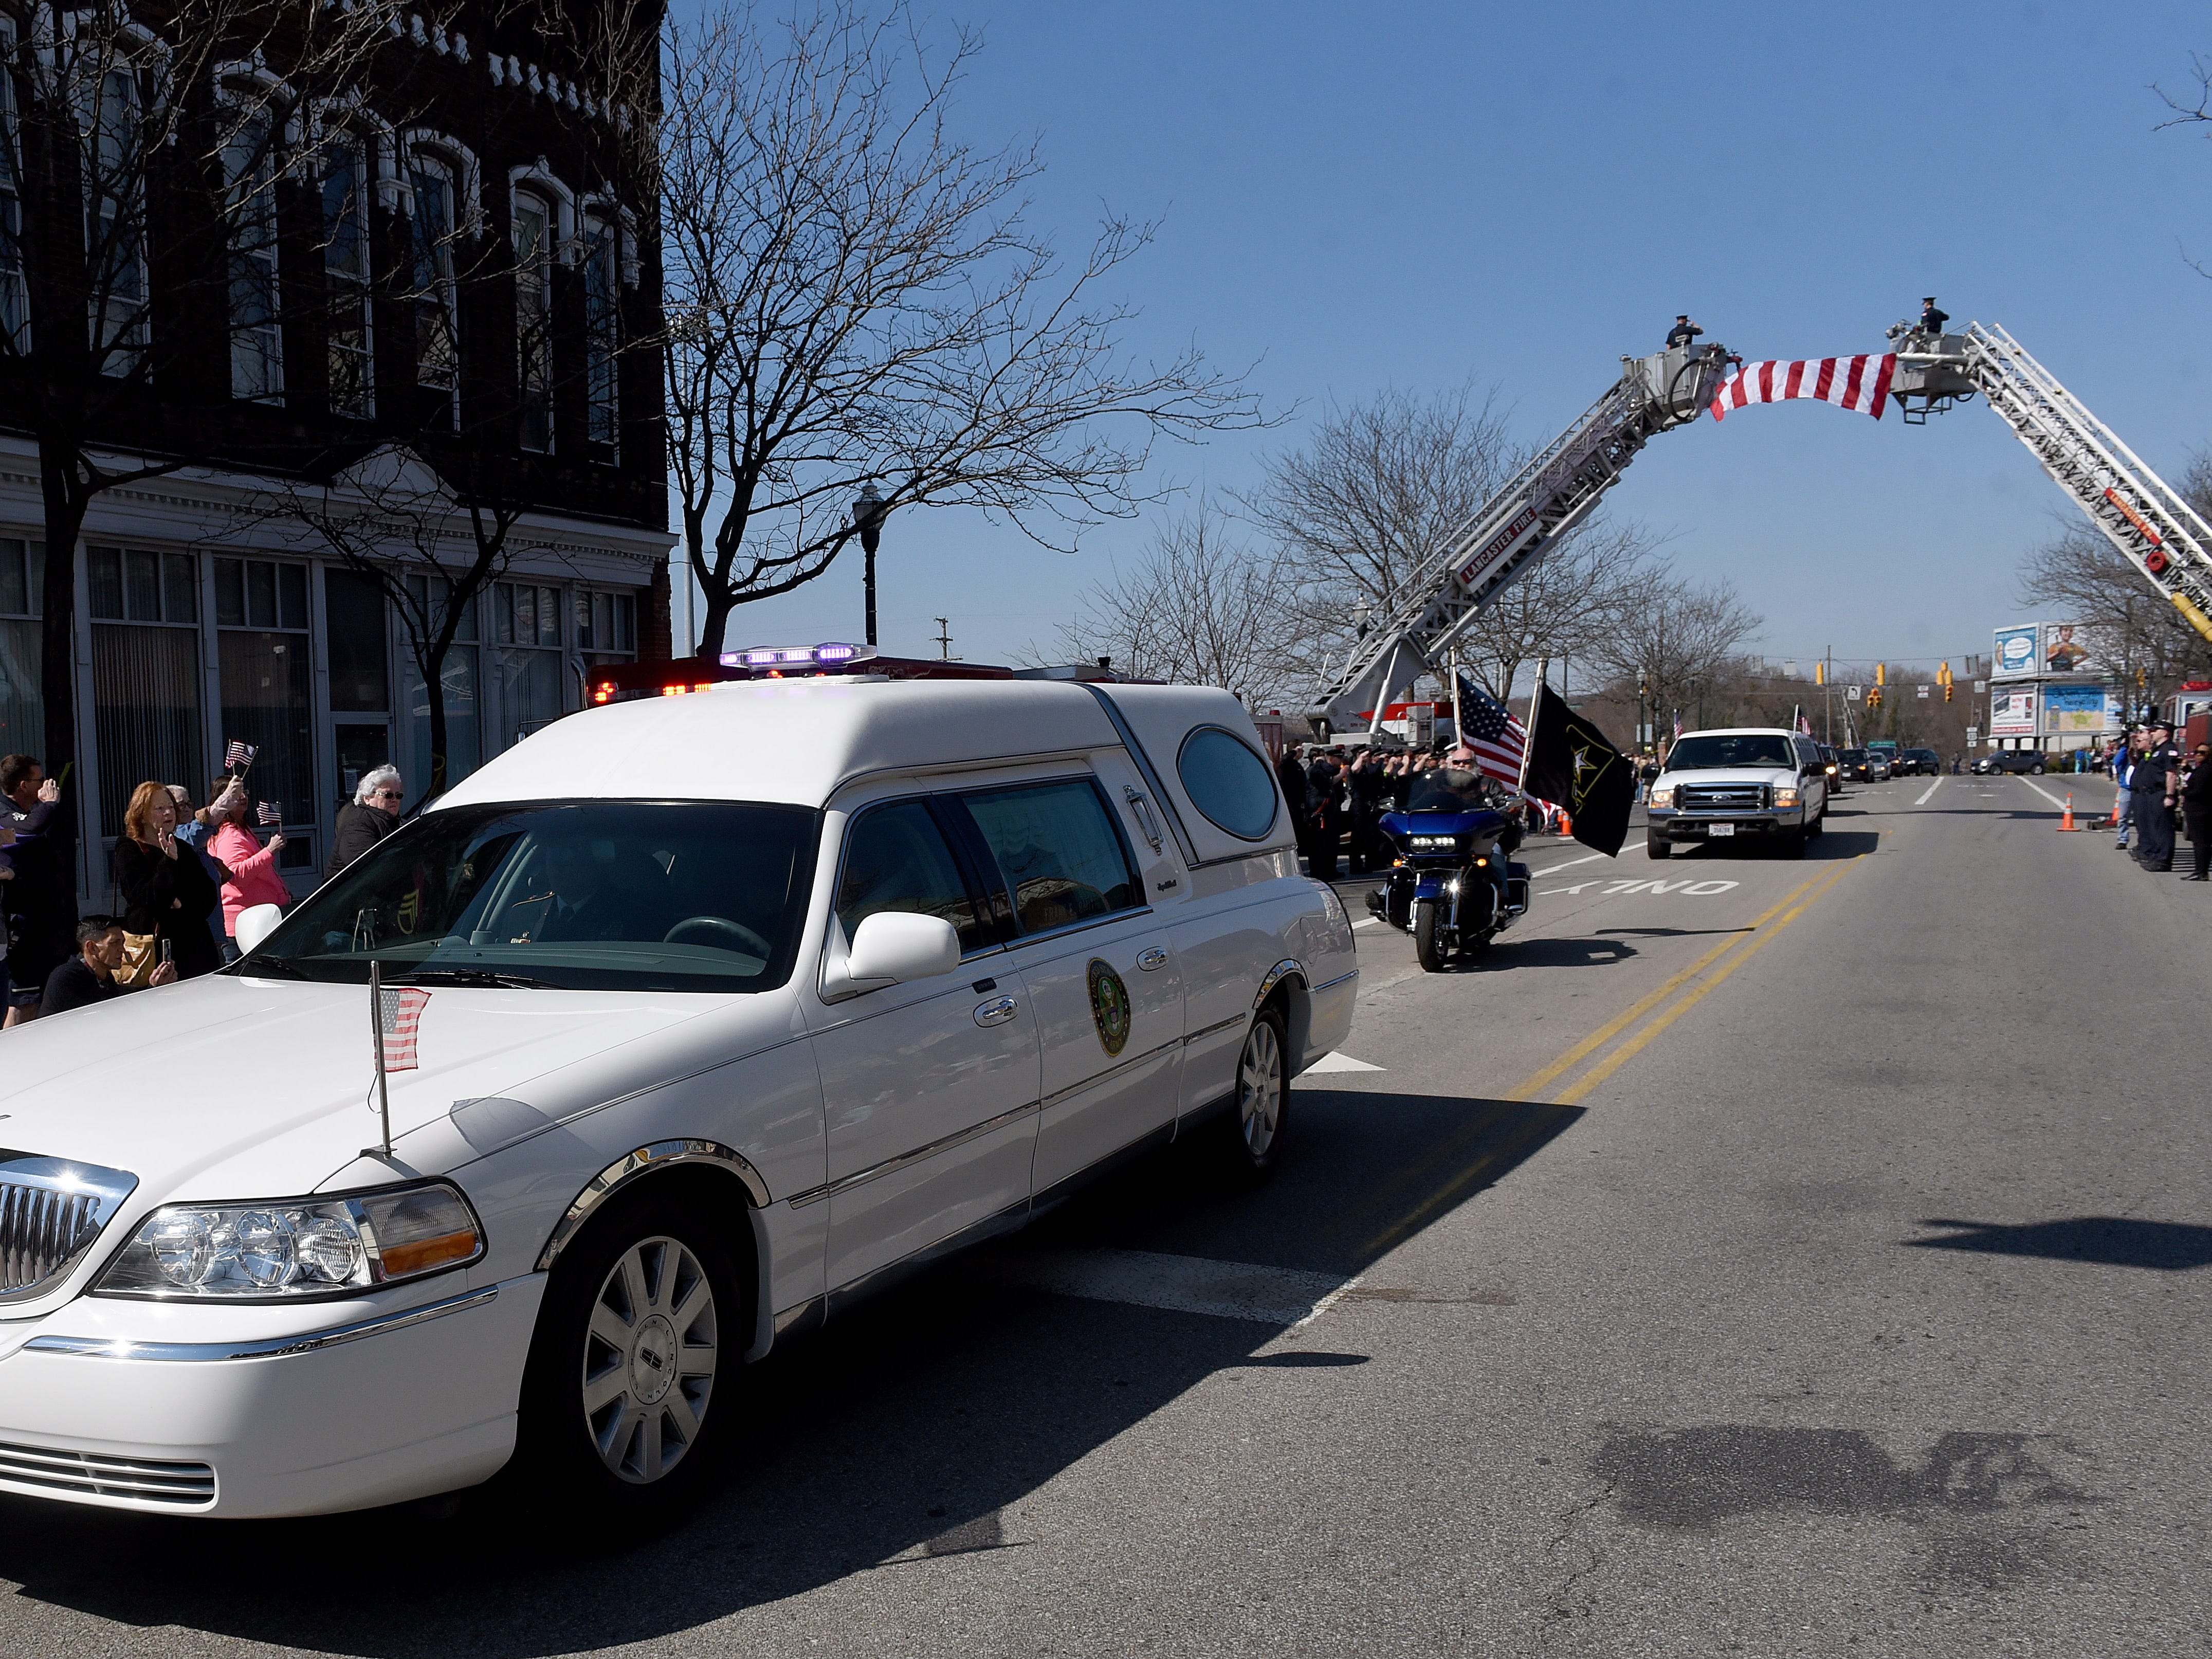 The hearse carrying U.S. Army Sgt. Joseph Collette down Main Street in Lancaster on Wednesday, April 3, 2019.